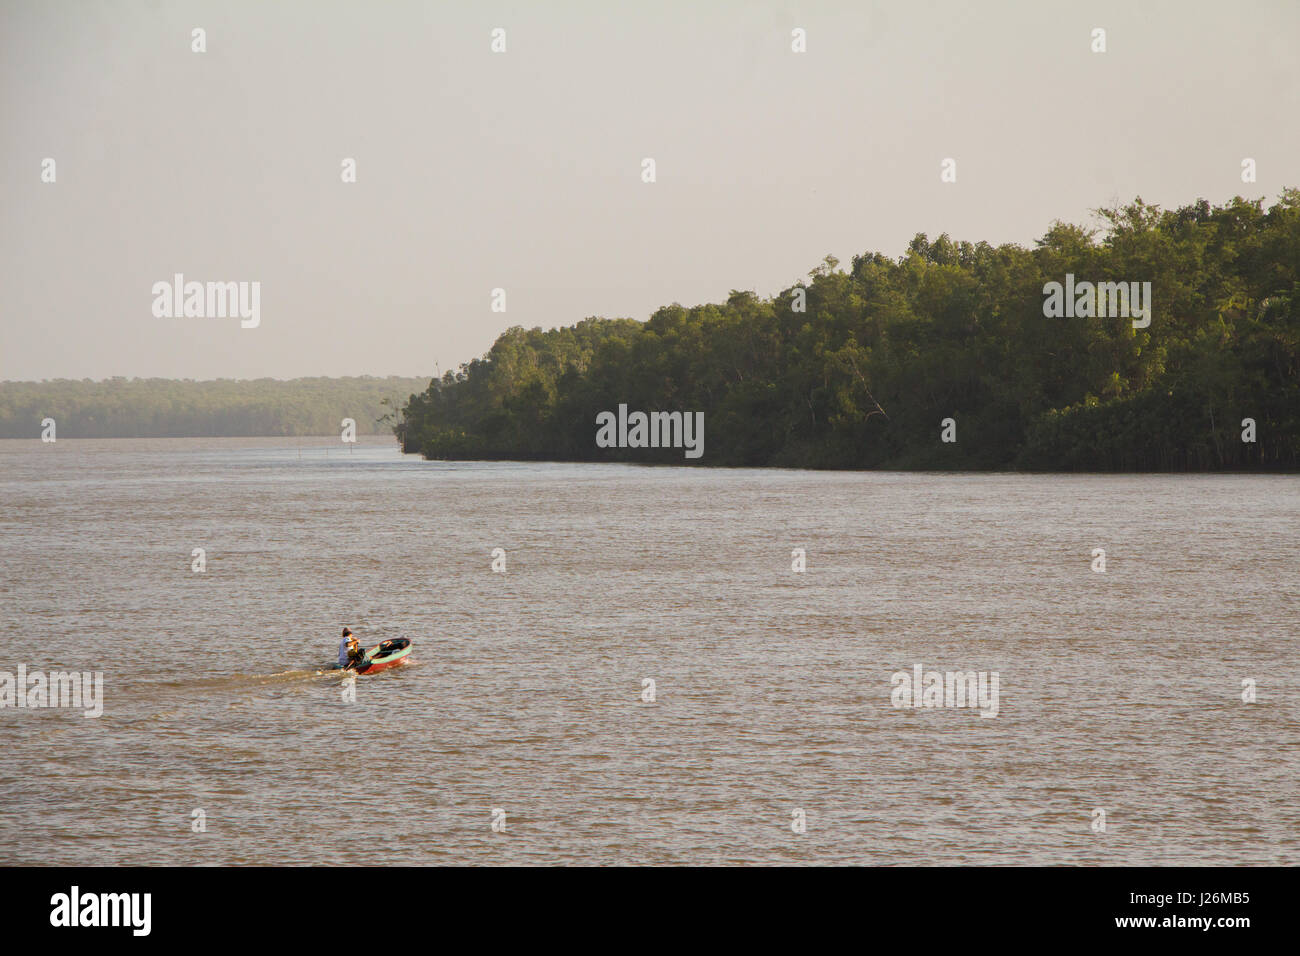 Man sails a 'rabeta', a traditional small brazilian motorboat, in the Amazon river. - Stock Image